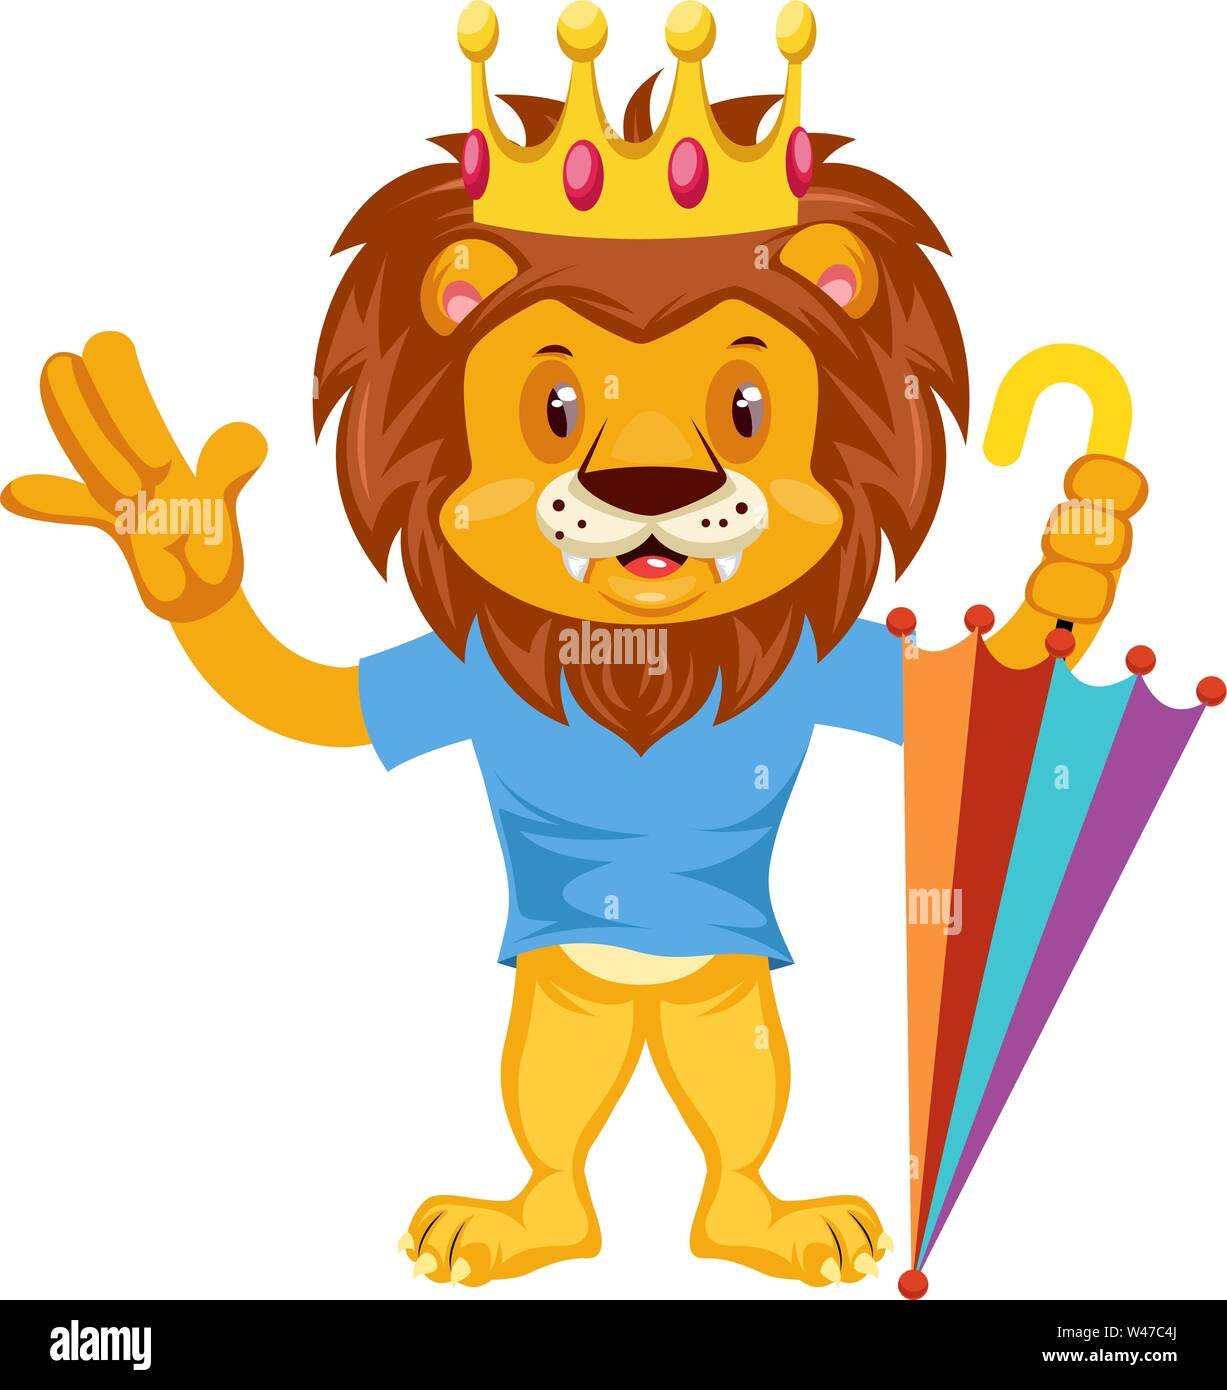 Lion with umbrella, illustration, vector on white background. - Stock Image